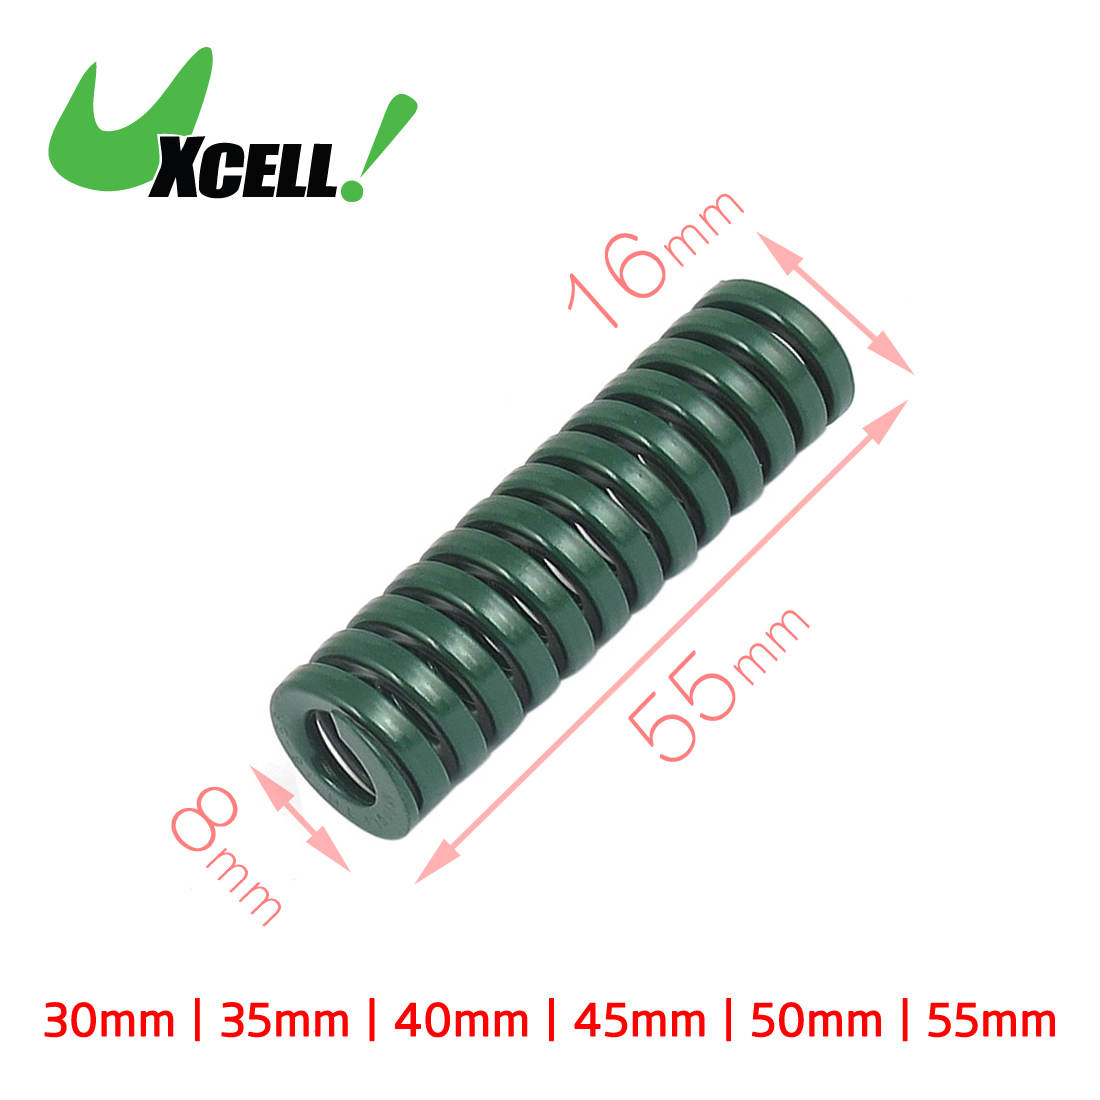 Uxcell 40mm Length Od 18mm Id 9mm Chromium Alloy Steel Heavy Load Die Spring Green 40x18x9mm